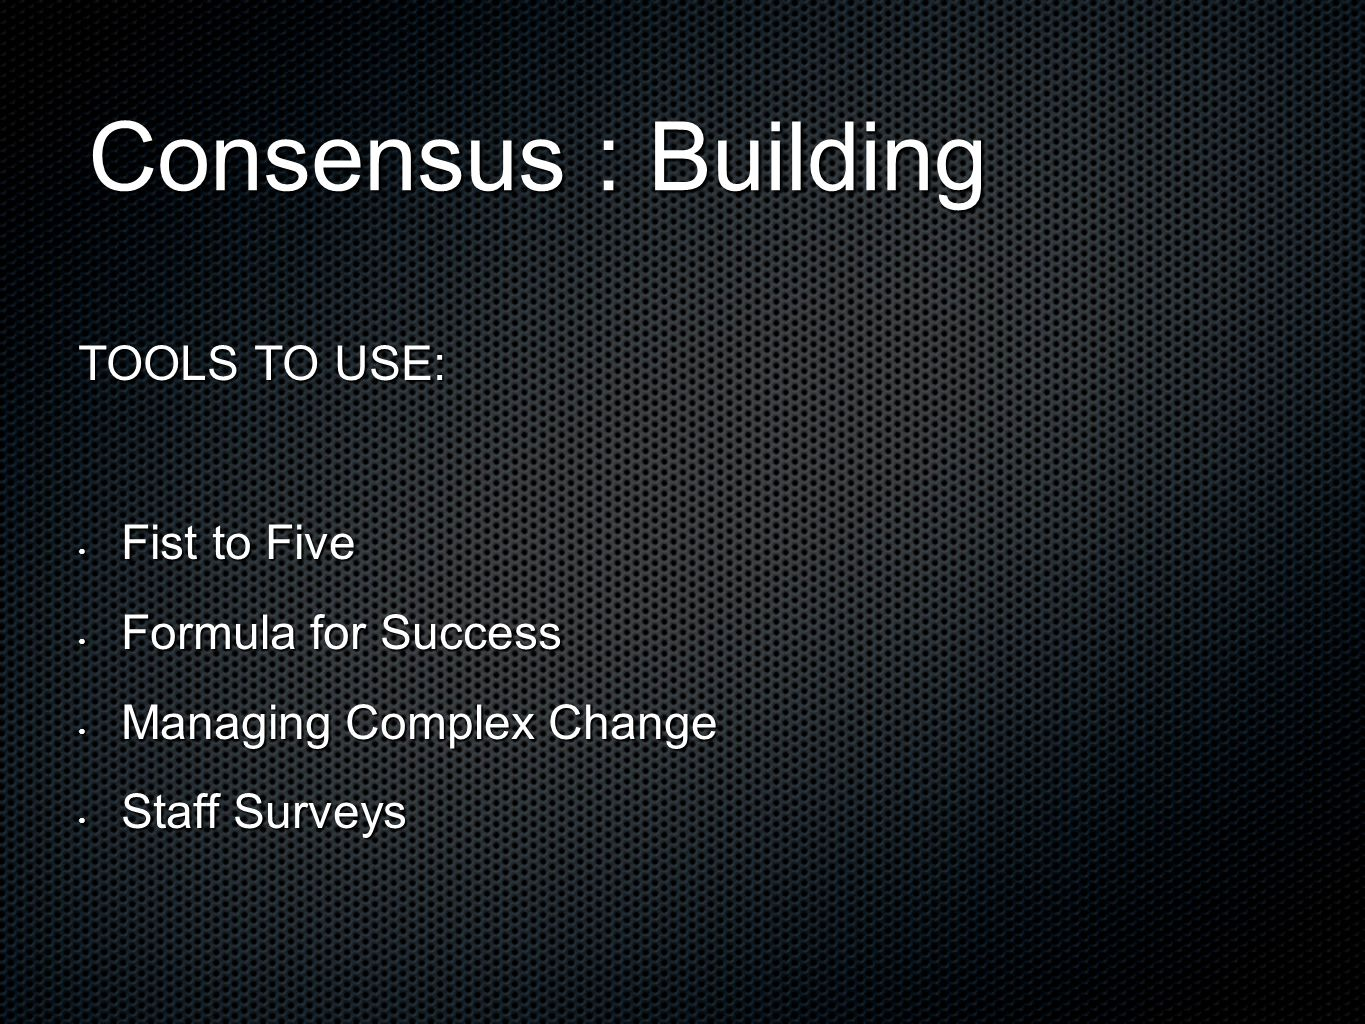 Consensus : Building TOOLS TO USE: Fist to Five Fist to Five Formula for Success Formula for Success Managing Complex Change Managing Complex Change Staff Surveys Staff Surveys